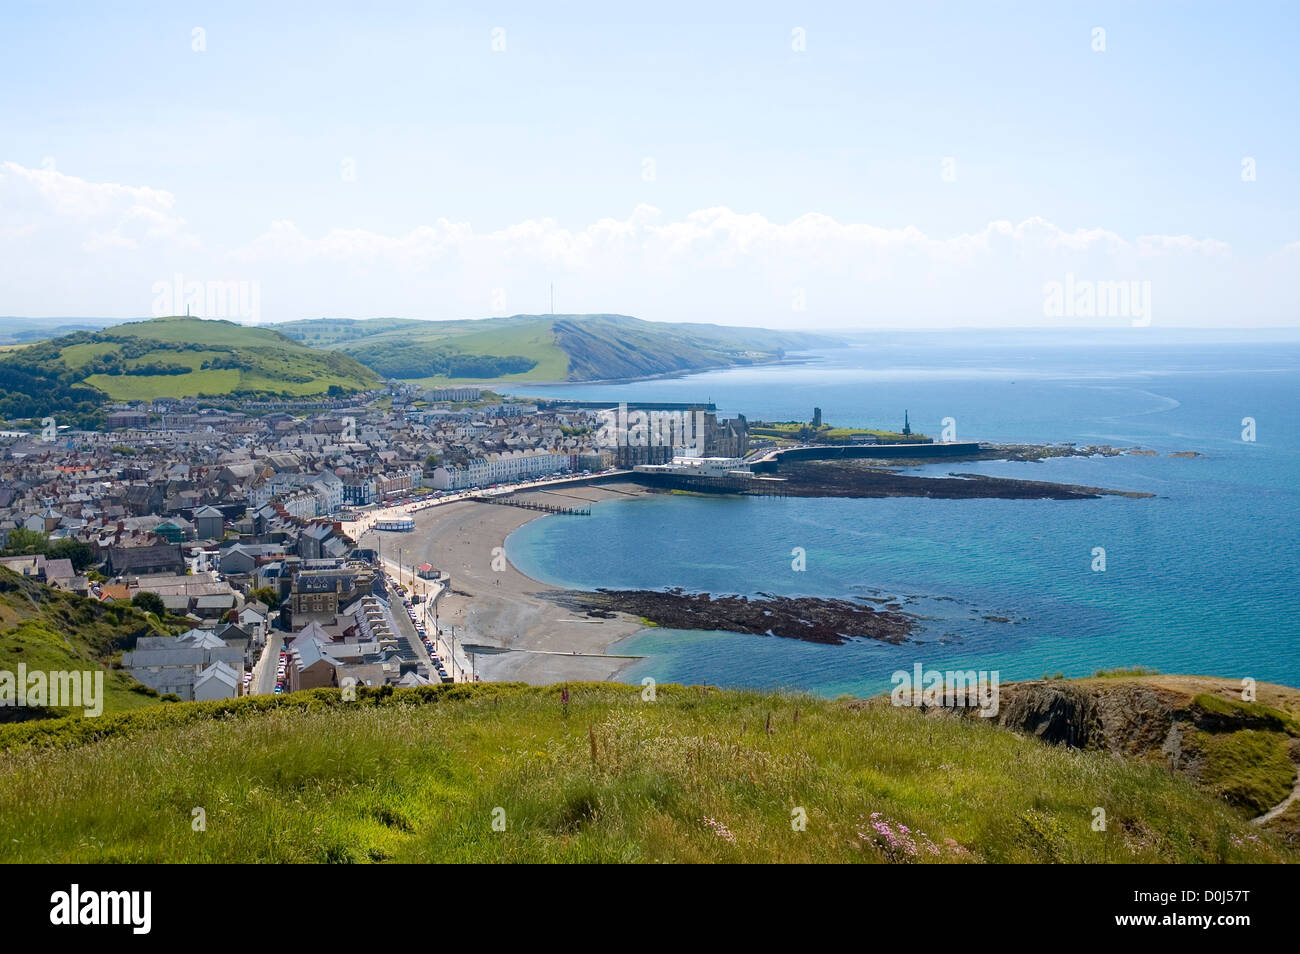 A view toward Aberystwyth from the hills above the town. - Stock Image